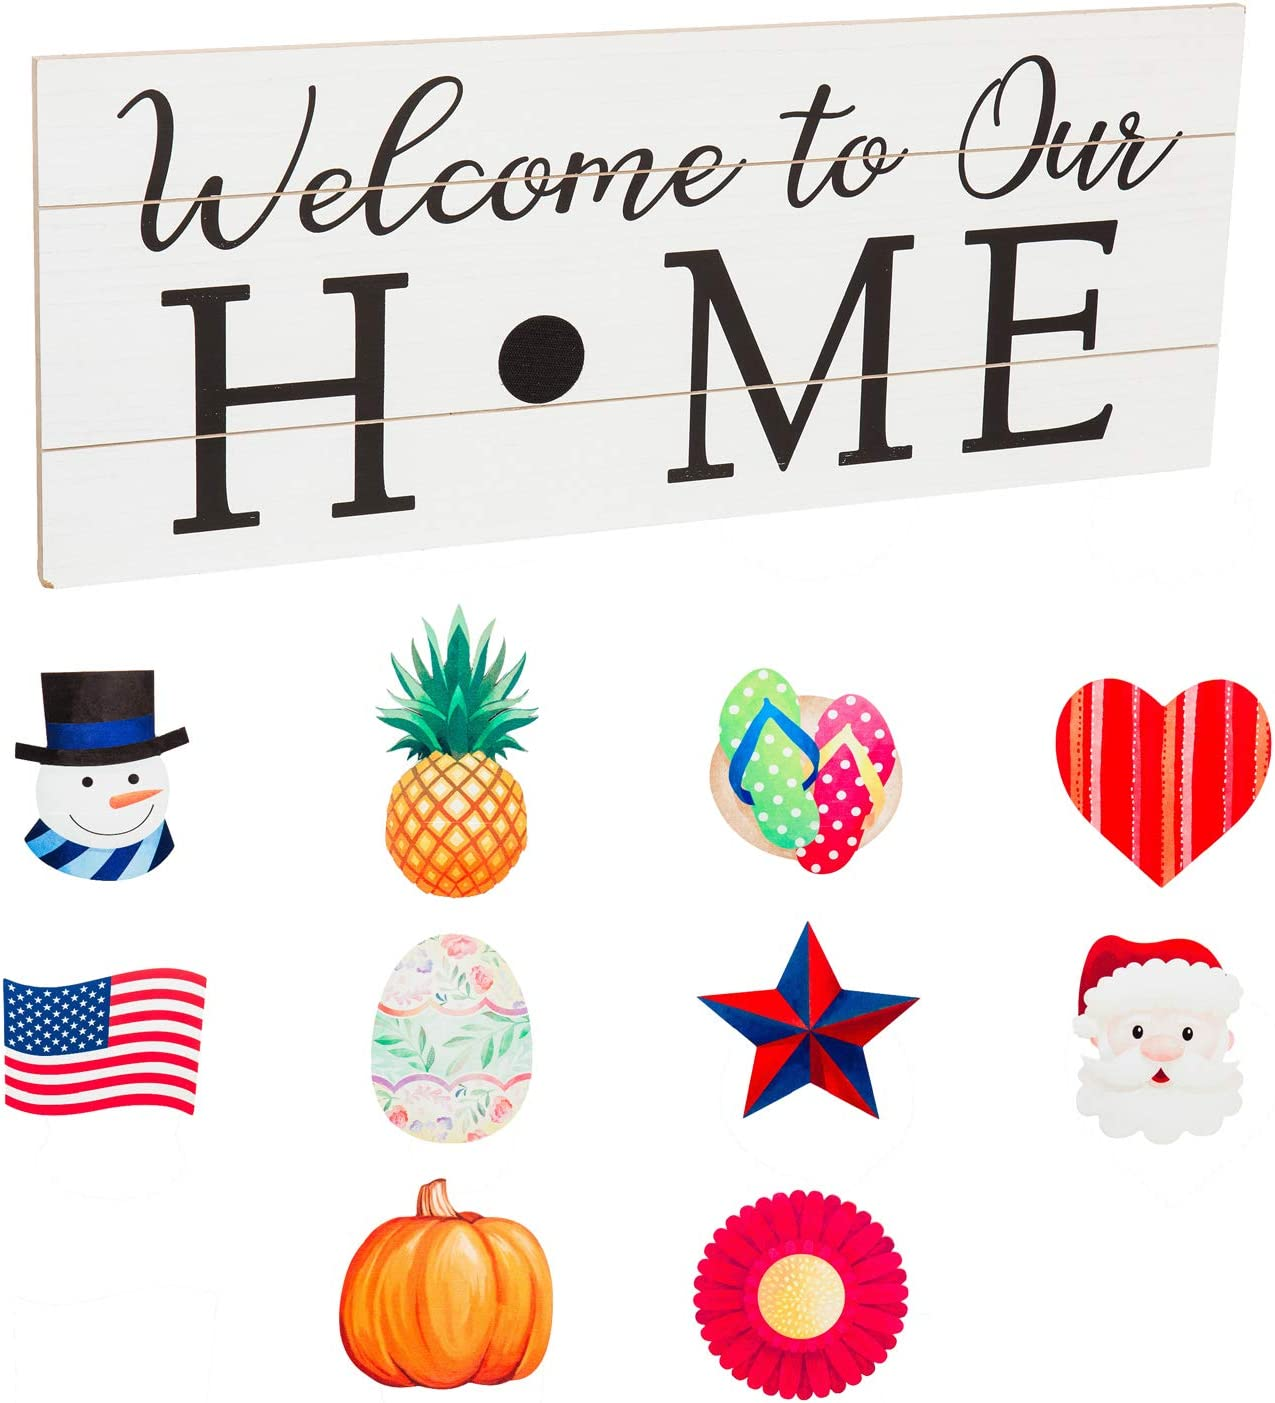 Welcome to Our Home Interchangeable Wood Sign - 28 x 1 x 11 Inches